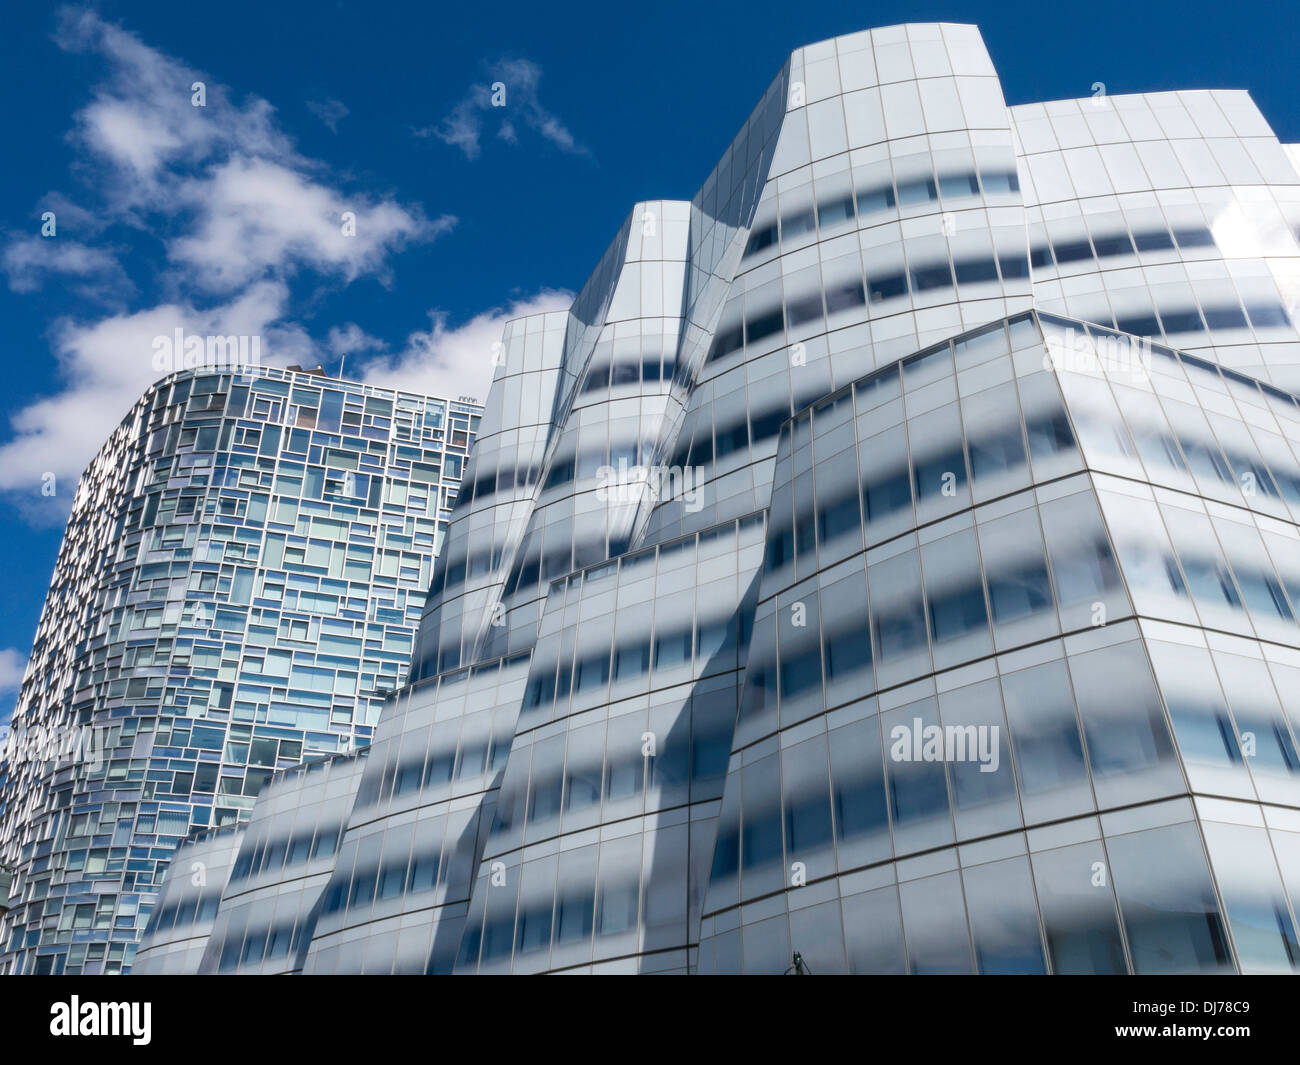 Frank gehry building and 100 eleventh avenue condo in chelsea nyc stock image